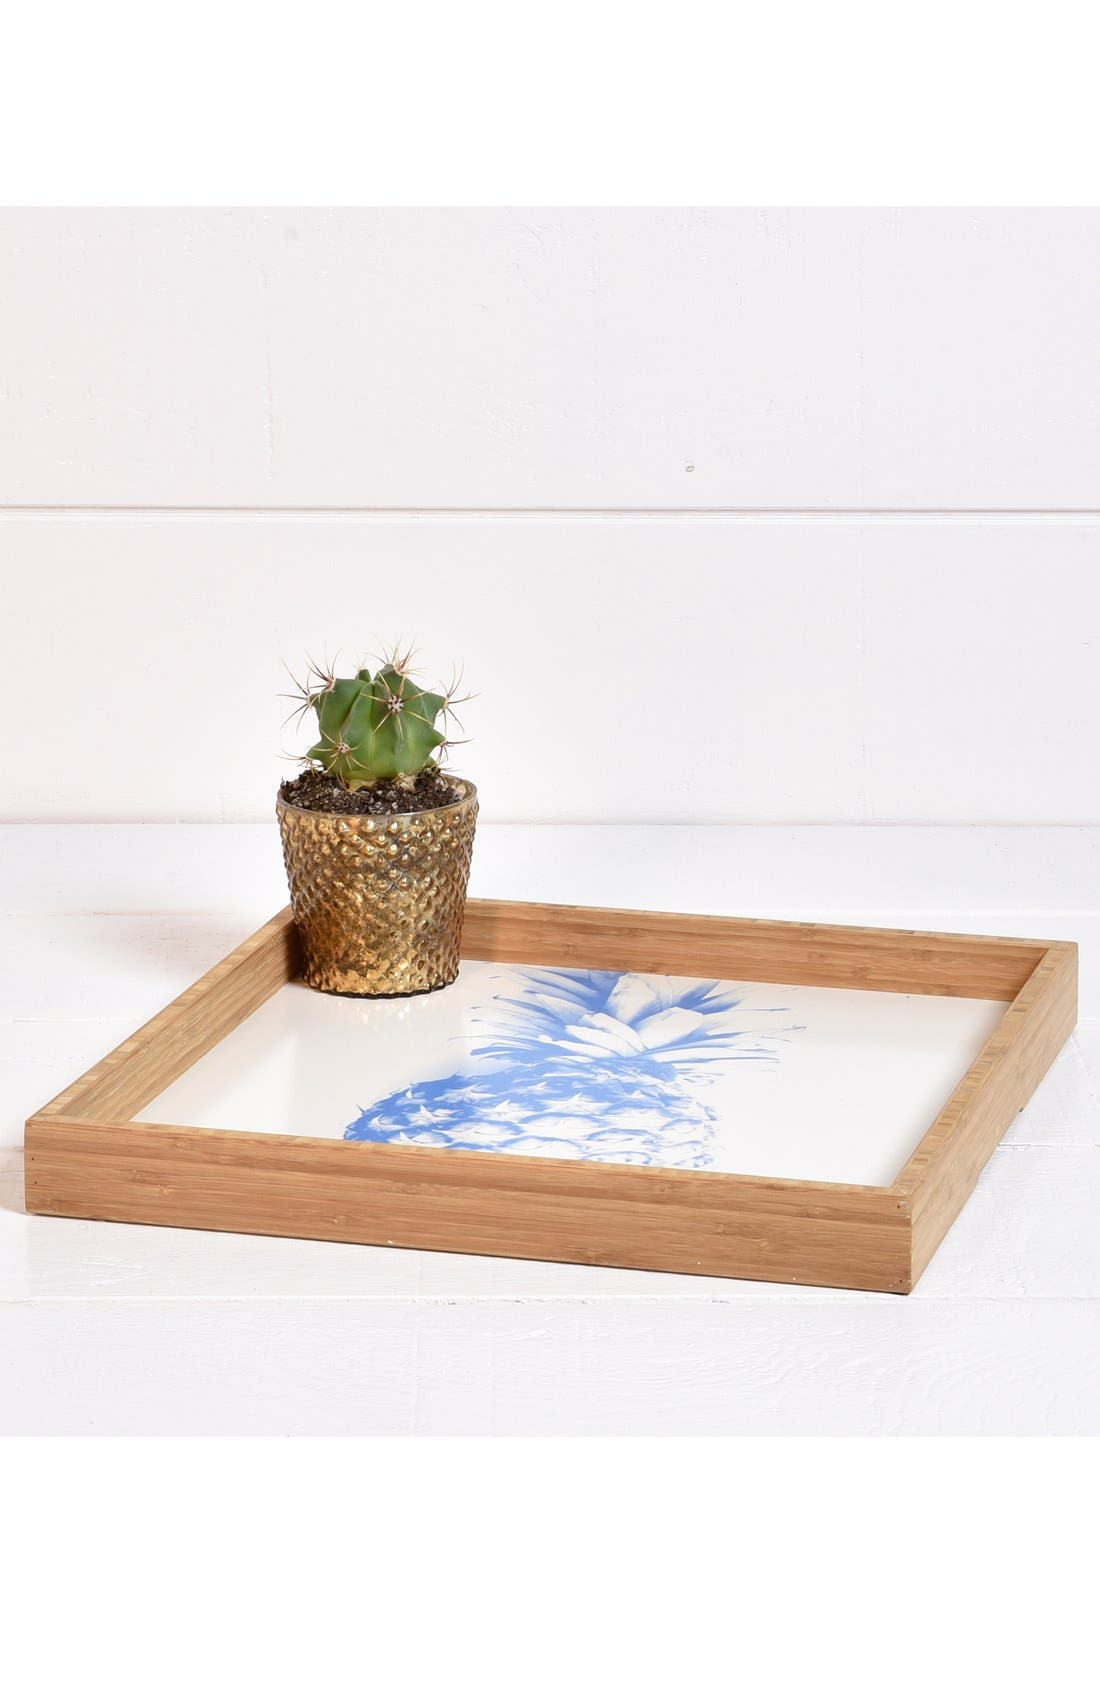 'Pineapple' Decorative Serving Tray,                             Alternate thumbnail 2, color,                             400